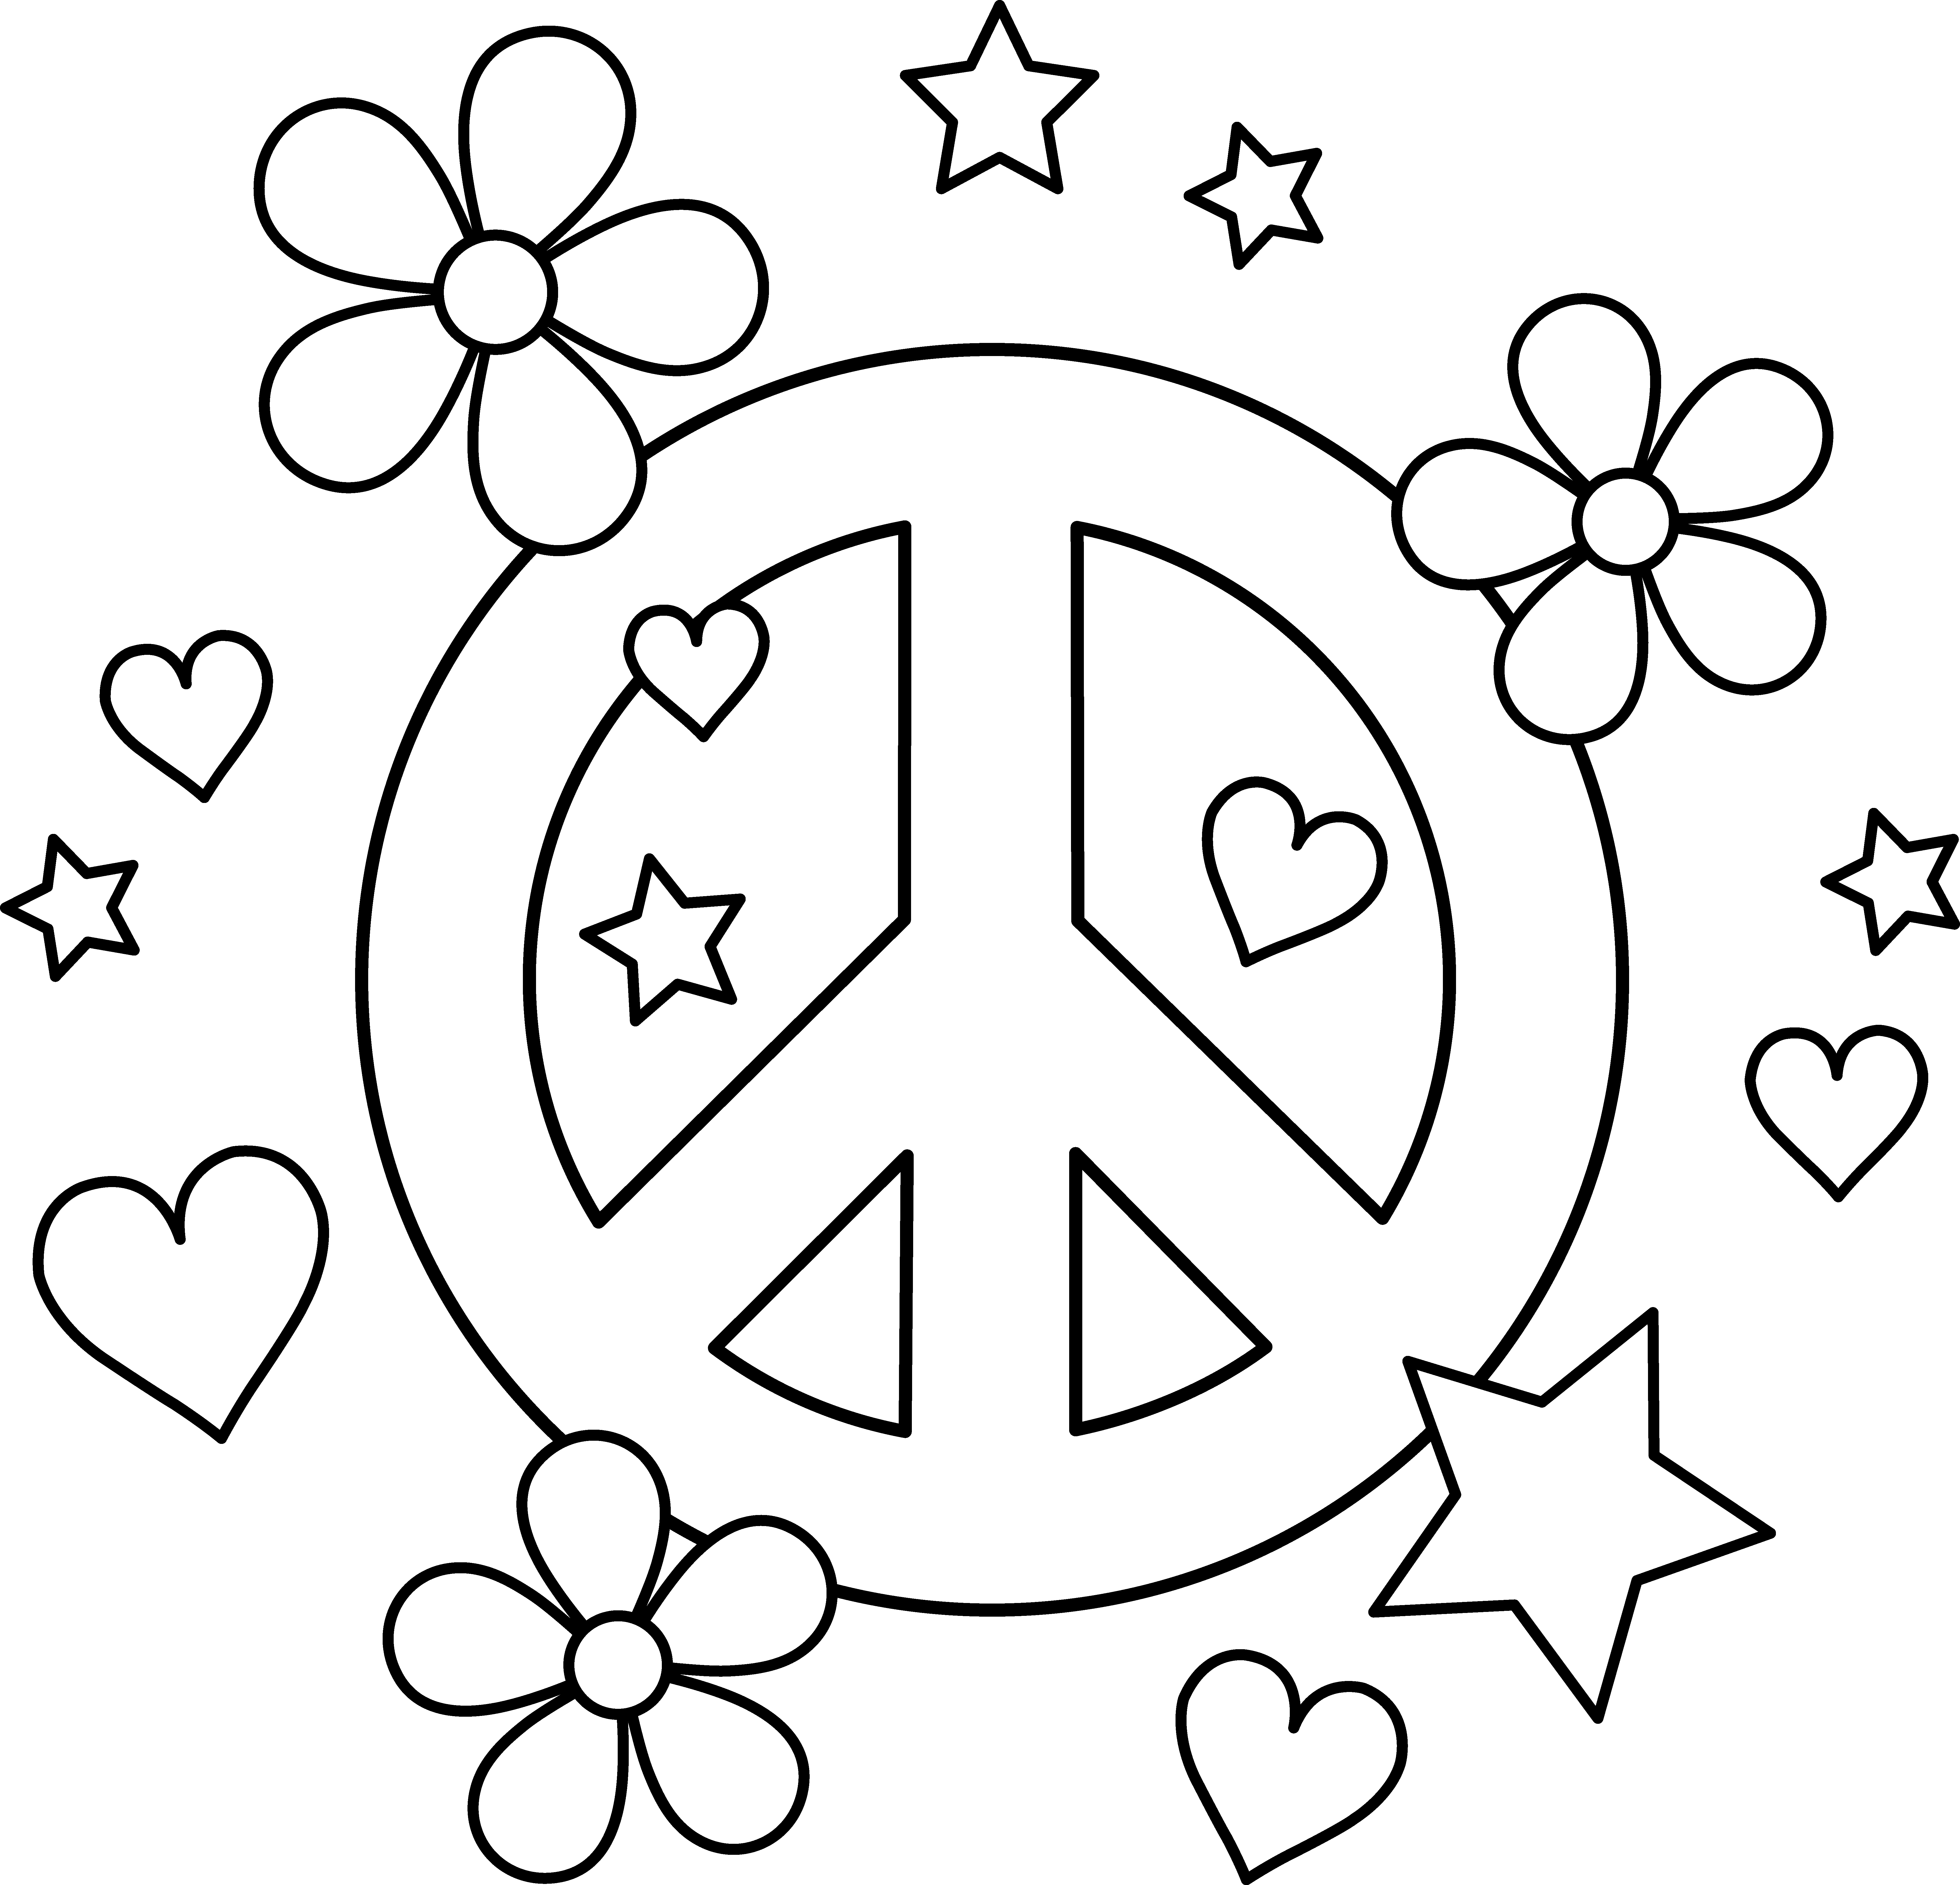 Groovy flower clipart banner black and white stock peace sign with flowers clipart - Clipground banner black and white stock